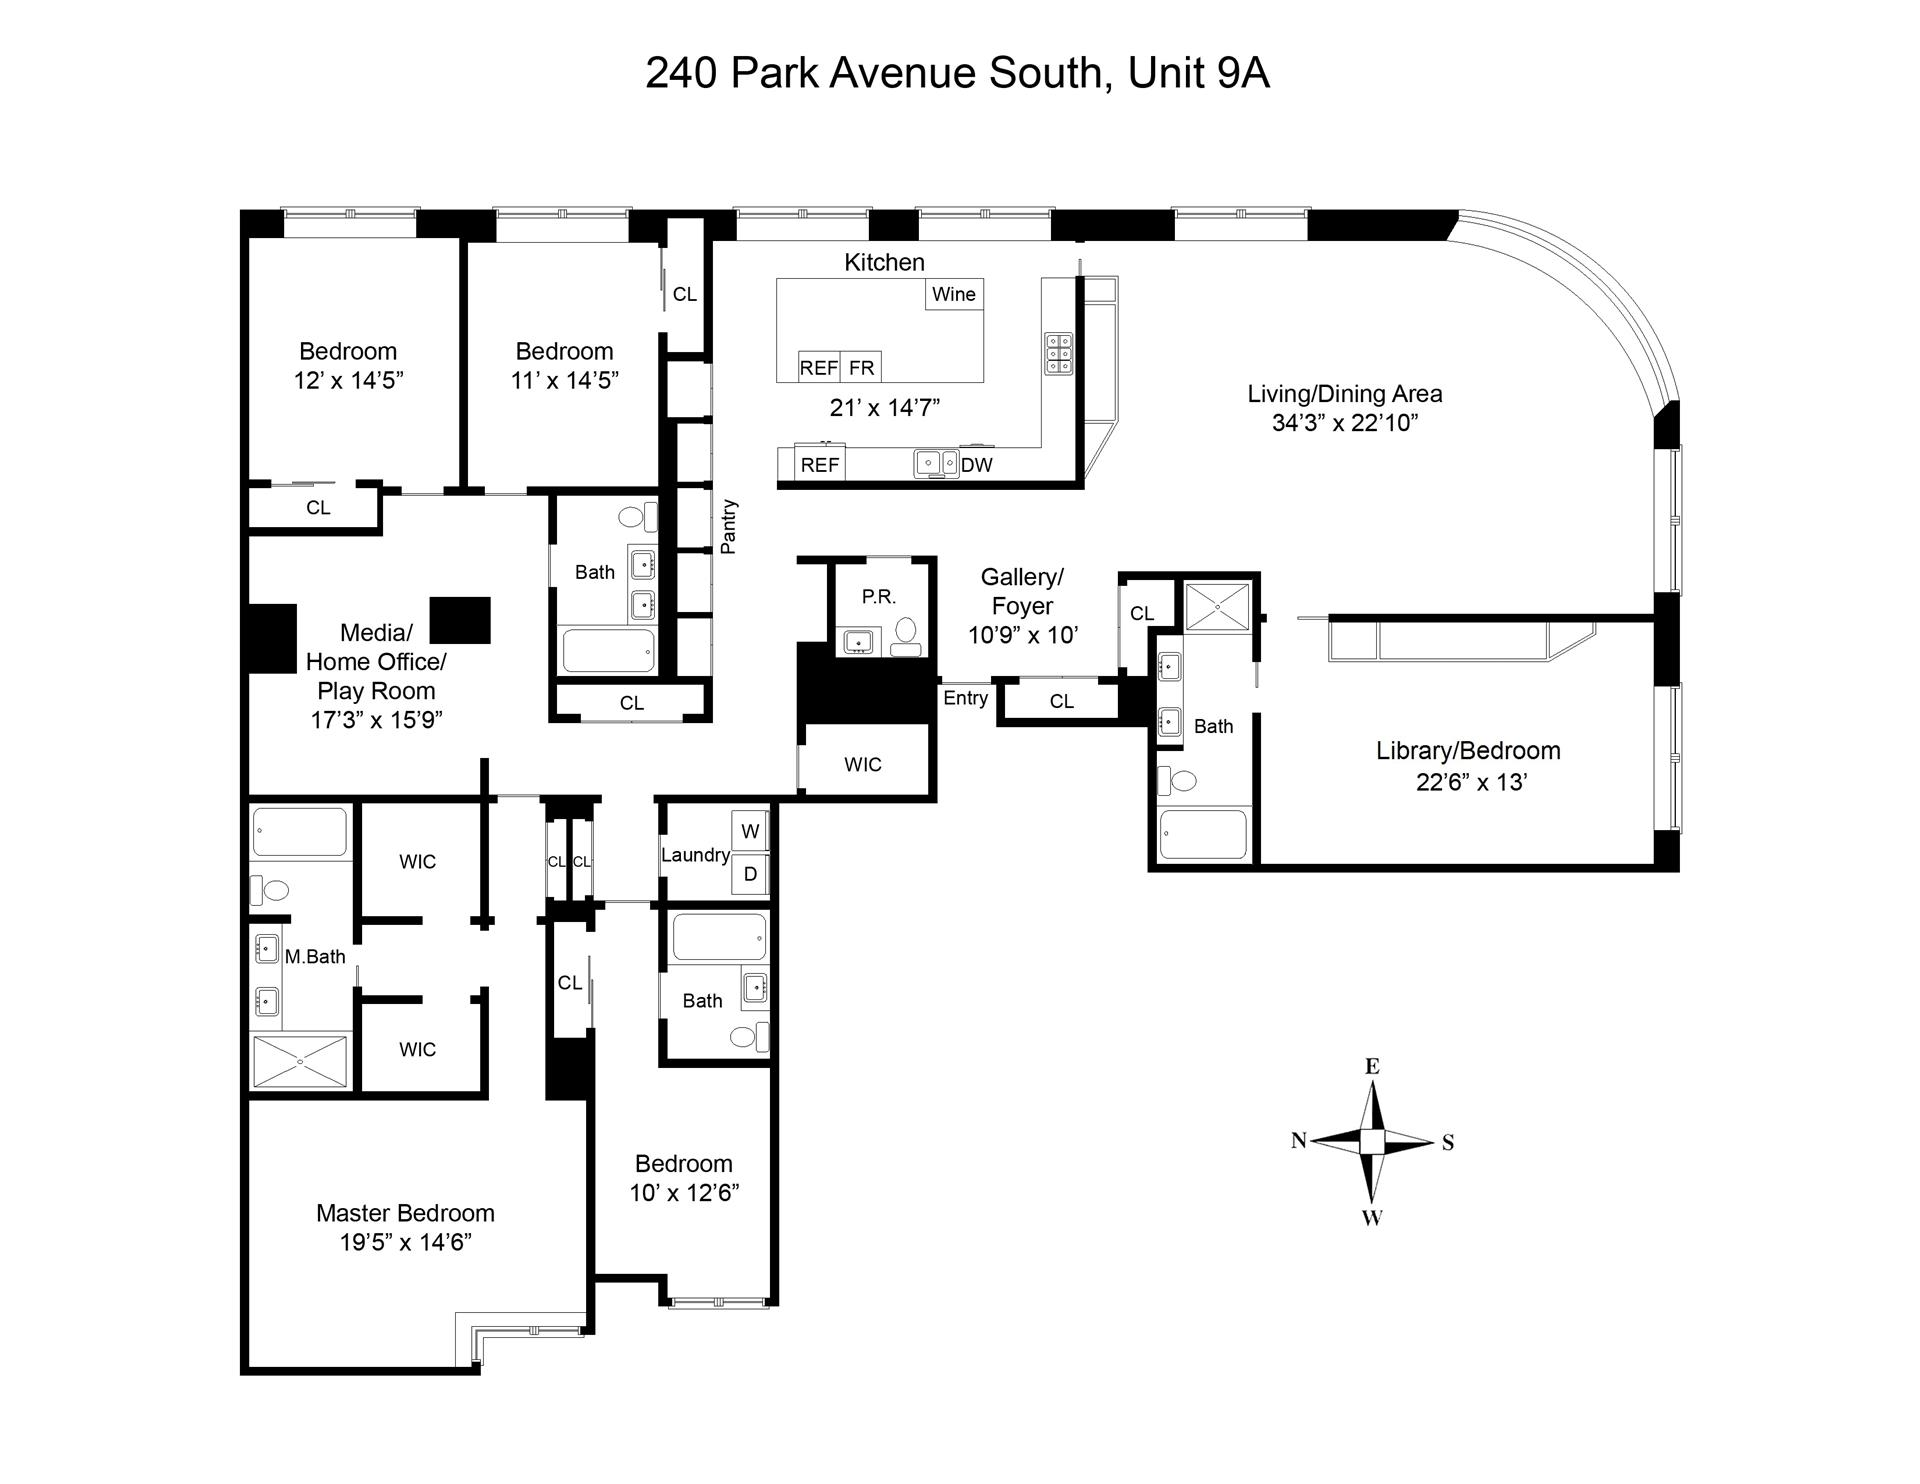 Floor plan of 240 Park Avenue South, 9A - Flatiron District, New York